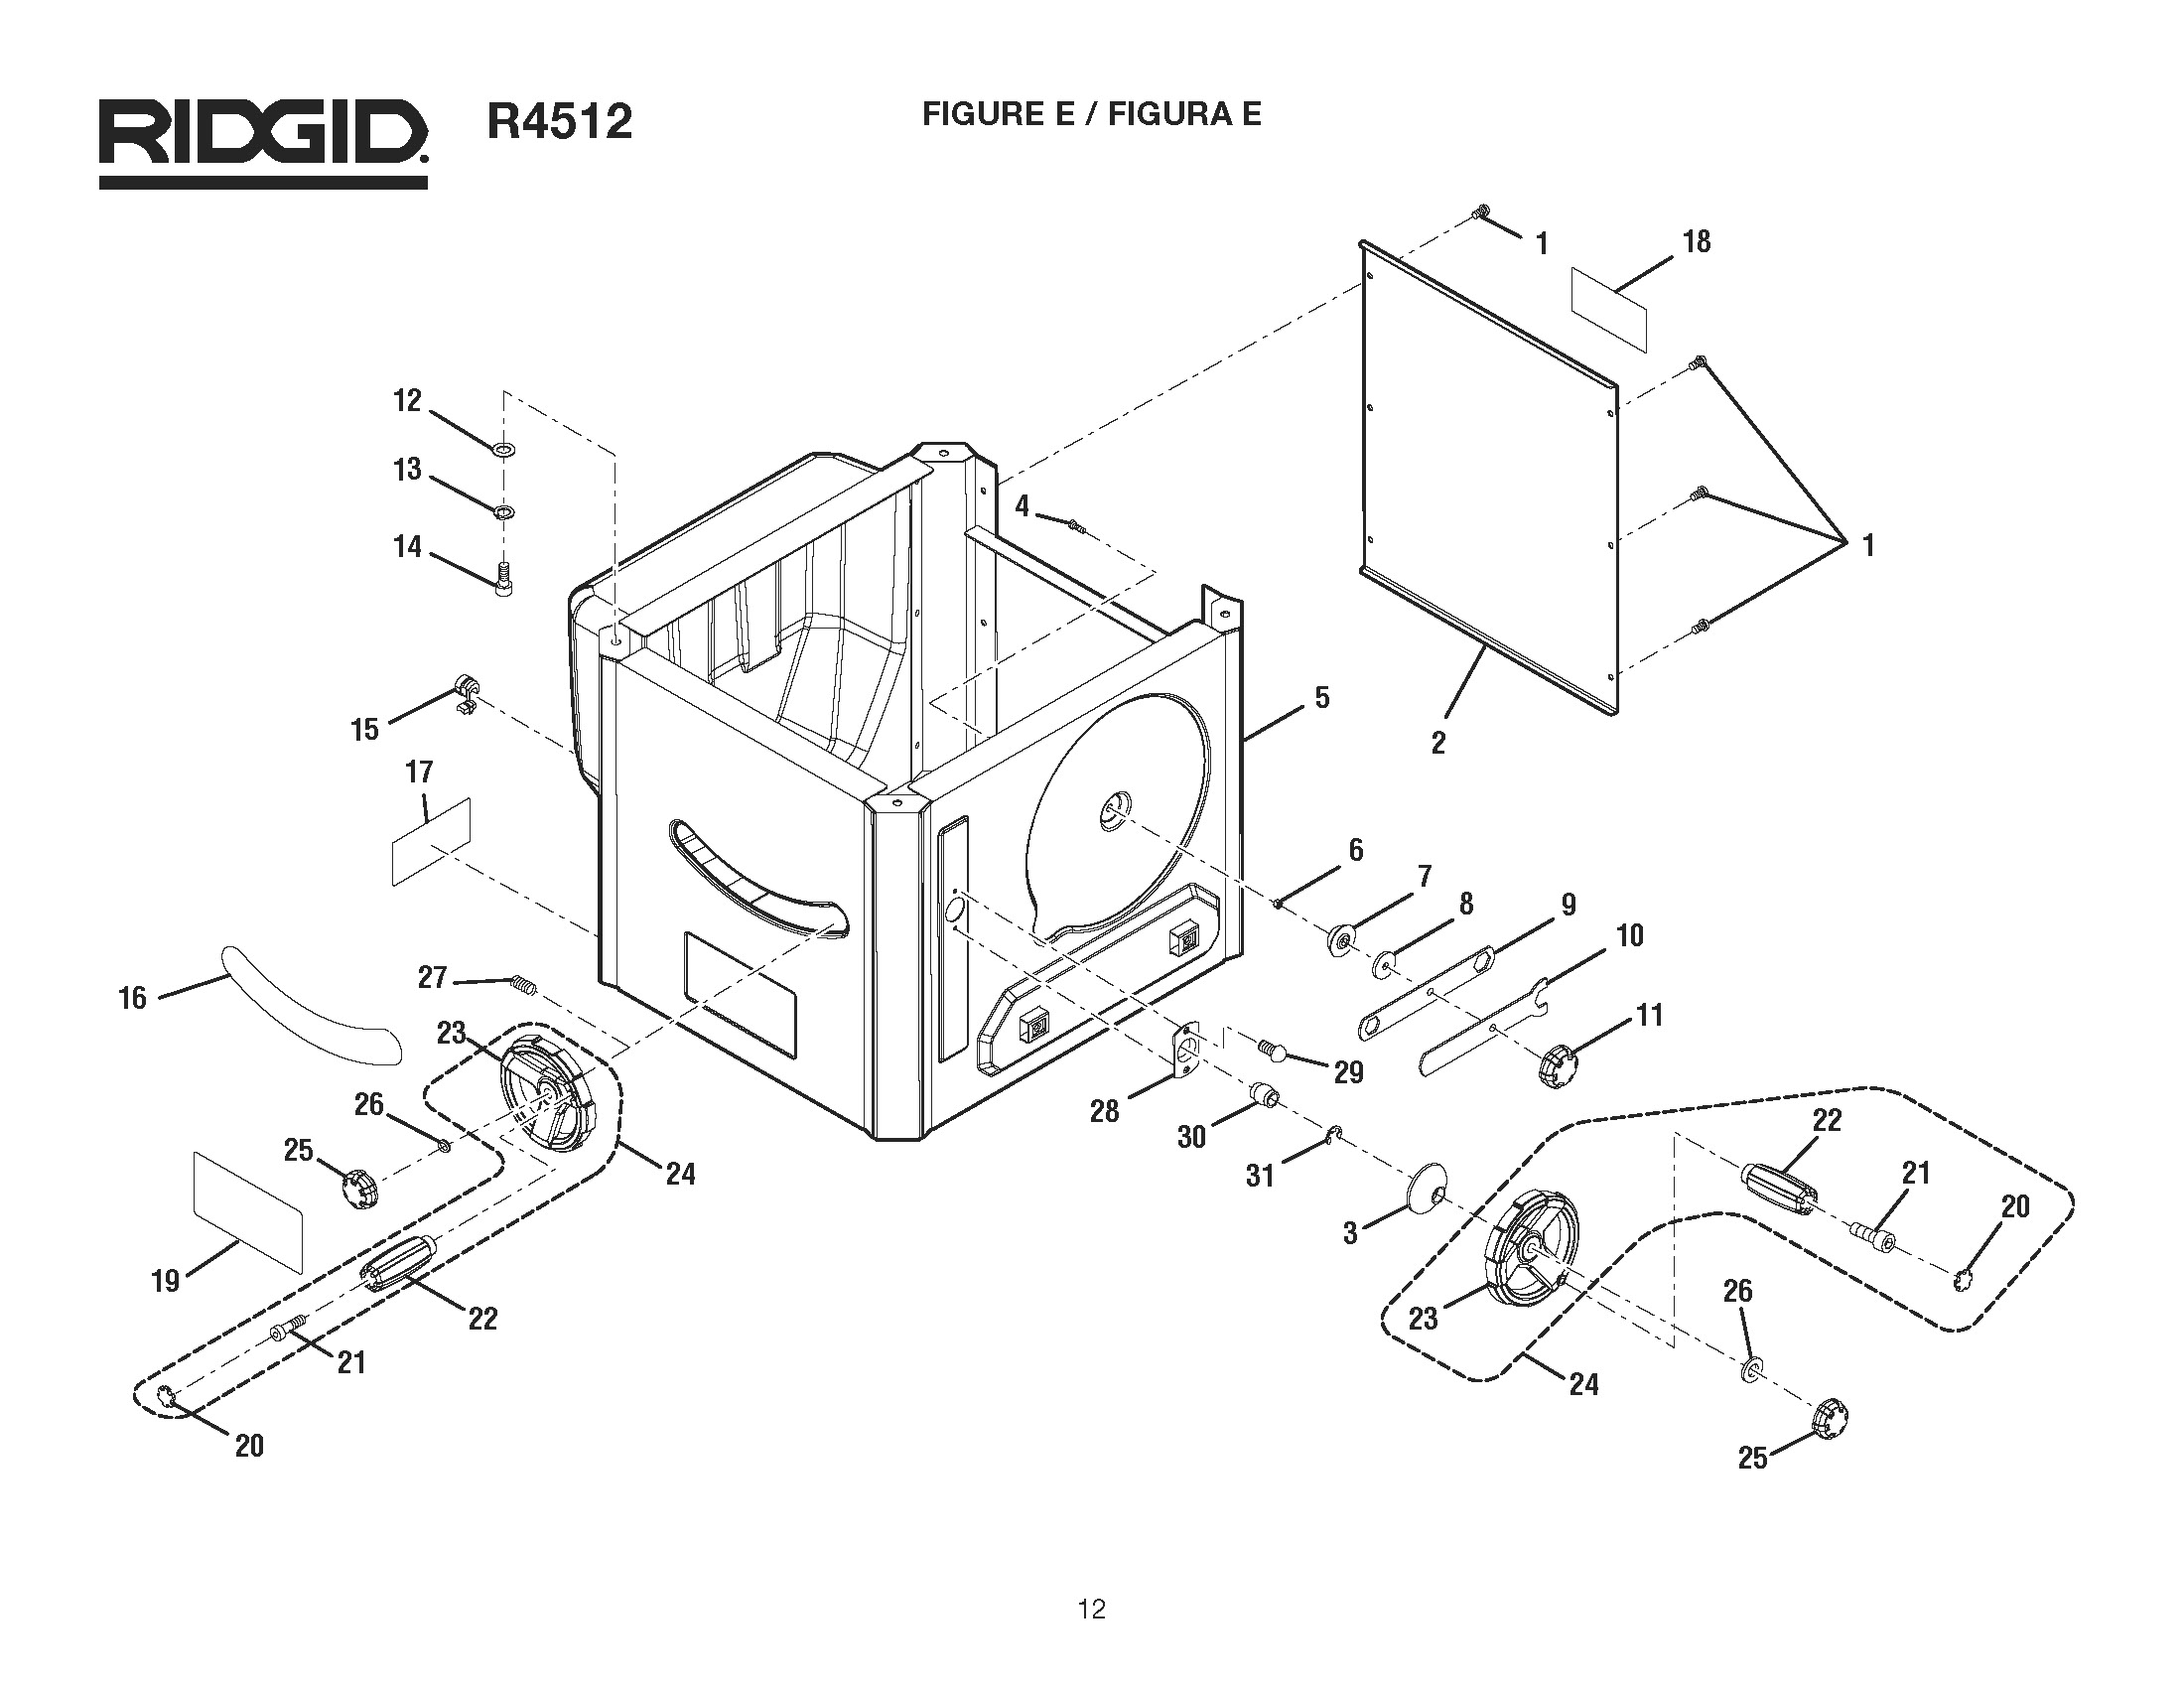 Ridgid table saw wiring diagram free download wiring diagrams r4512 ridgid table saw parts for table saw parts diagram ridgid r4512 table saw at figure greentooth